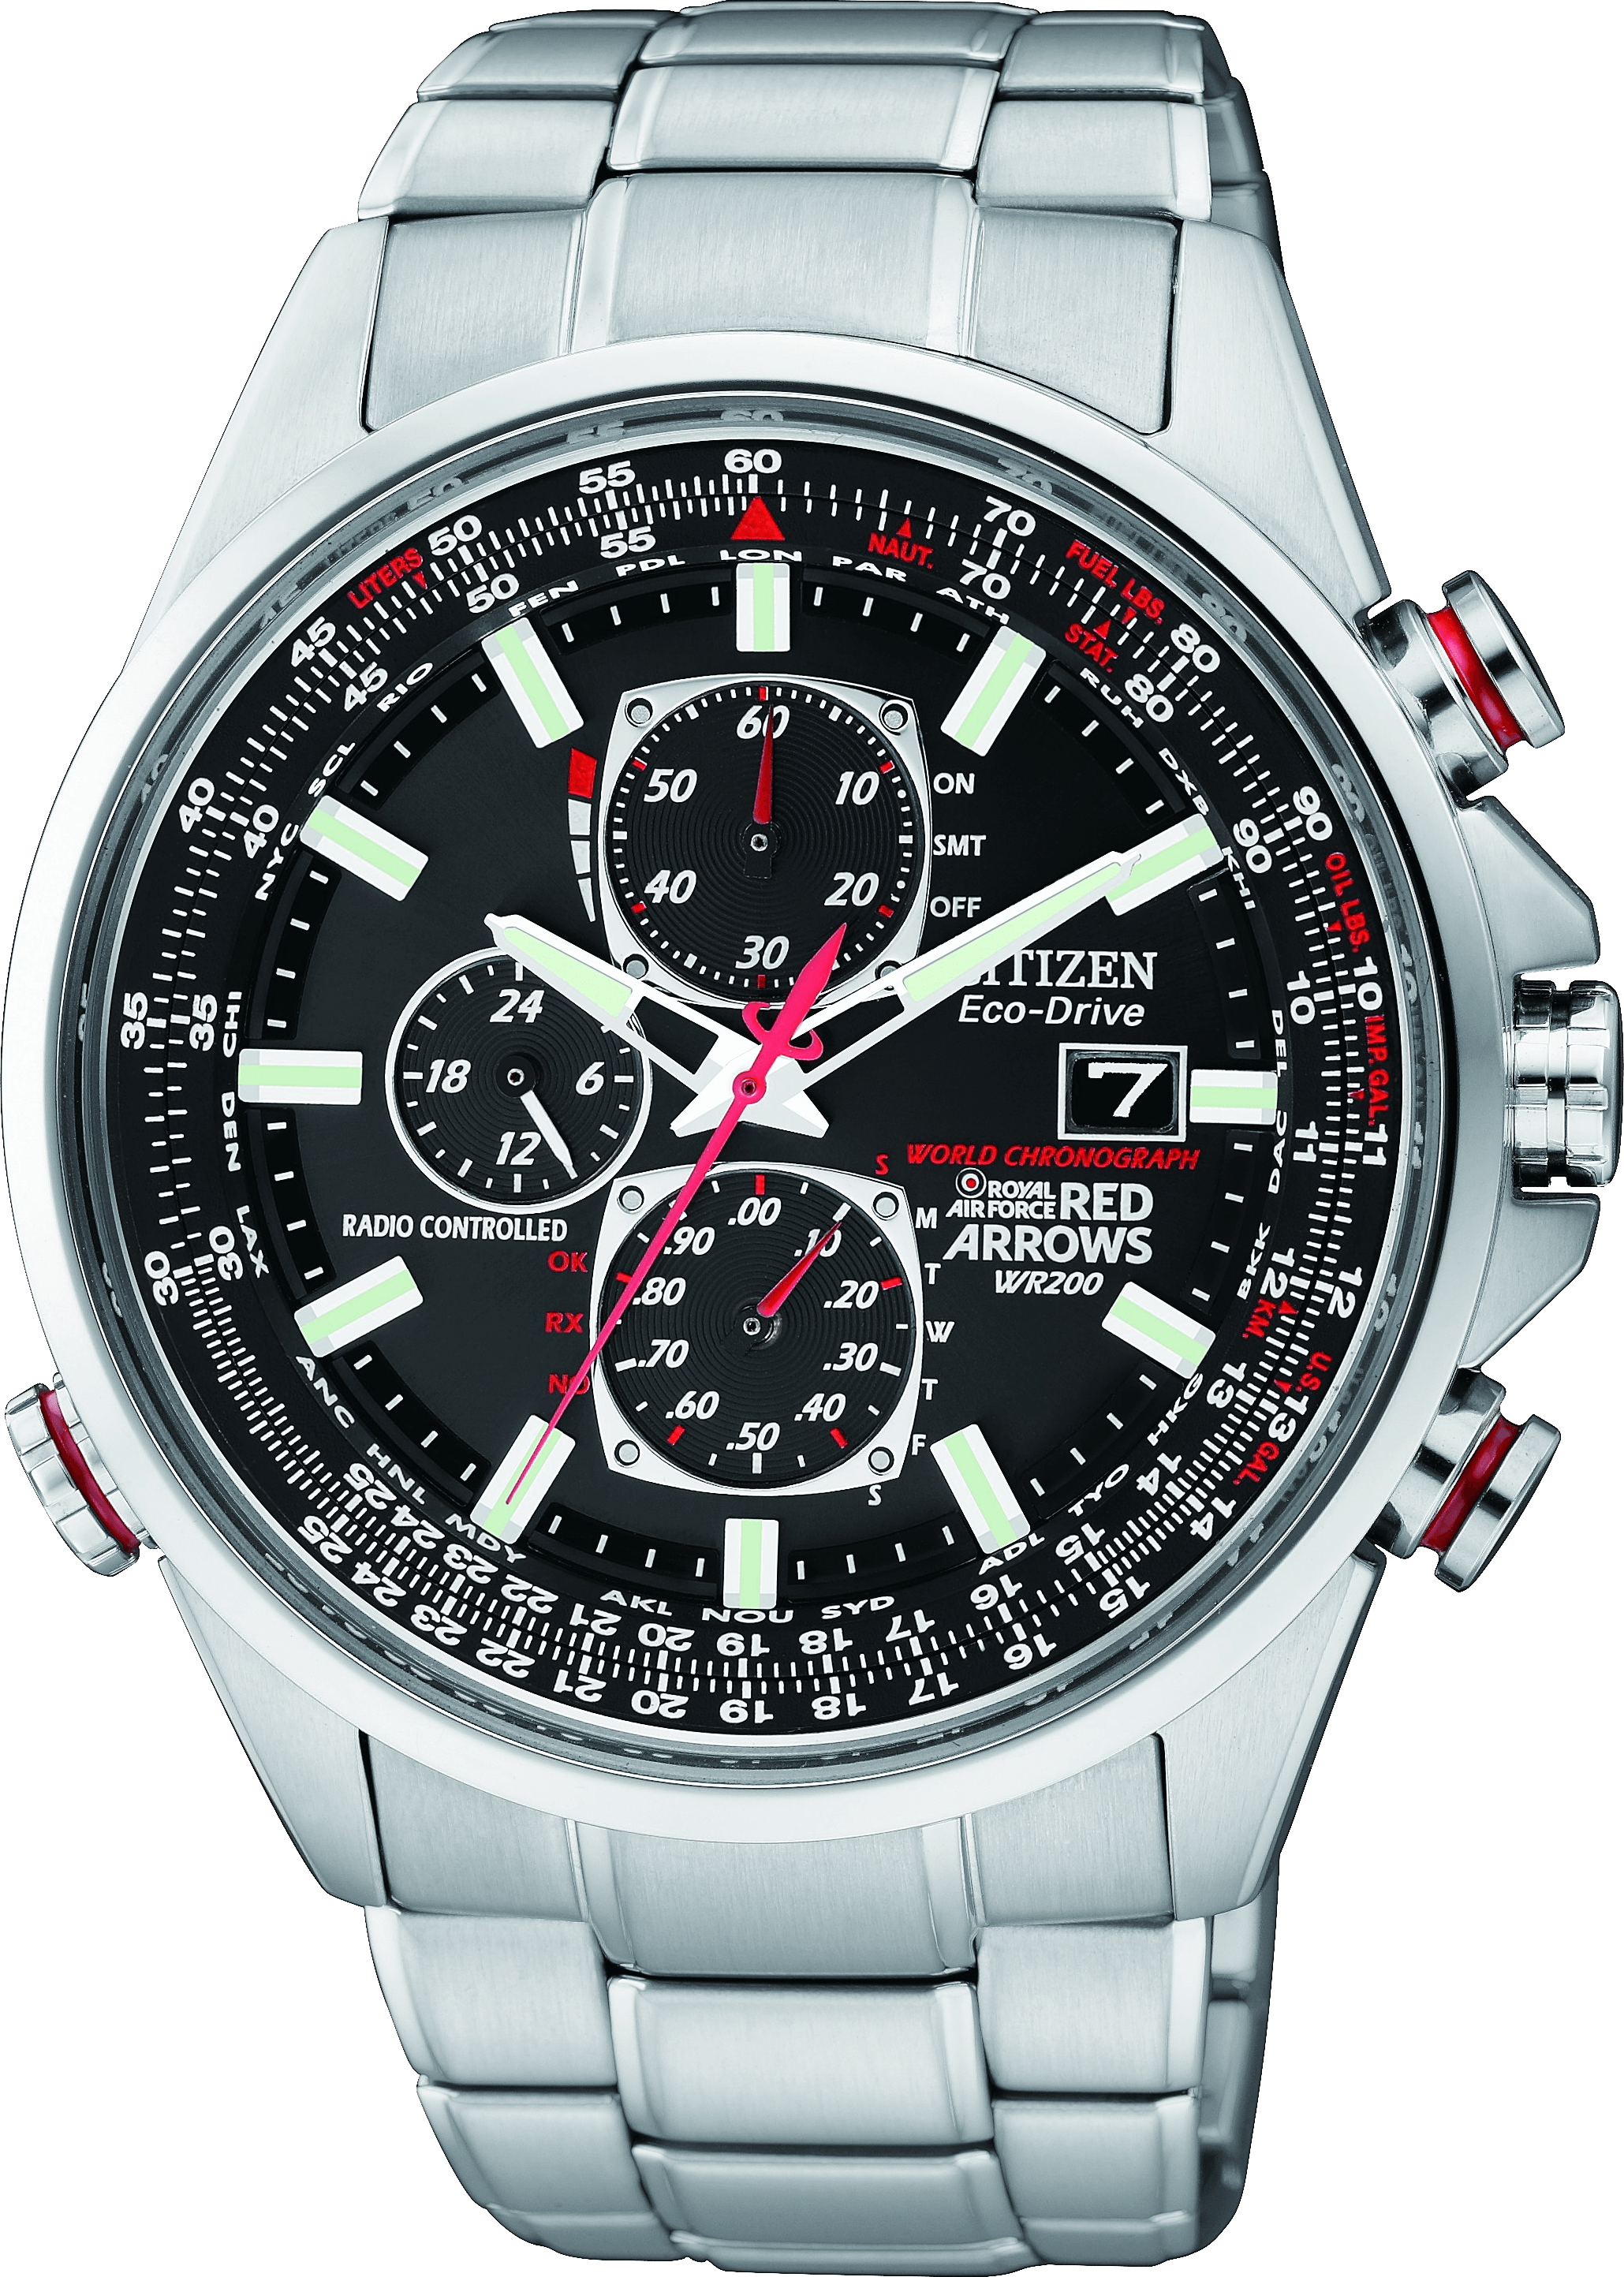 Wristwatch Png Image PNG Image